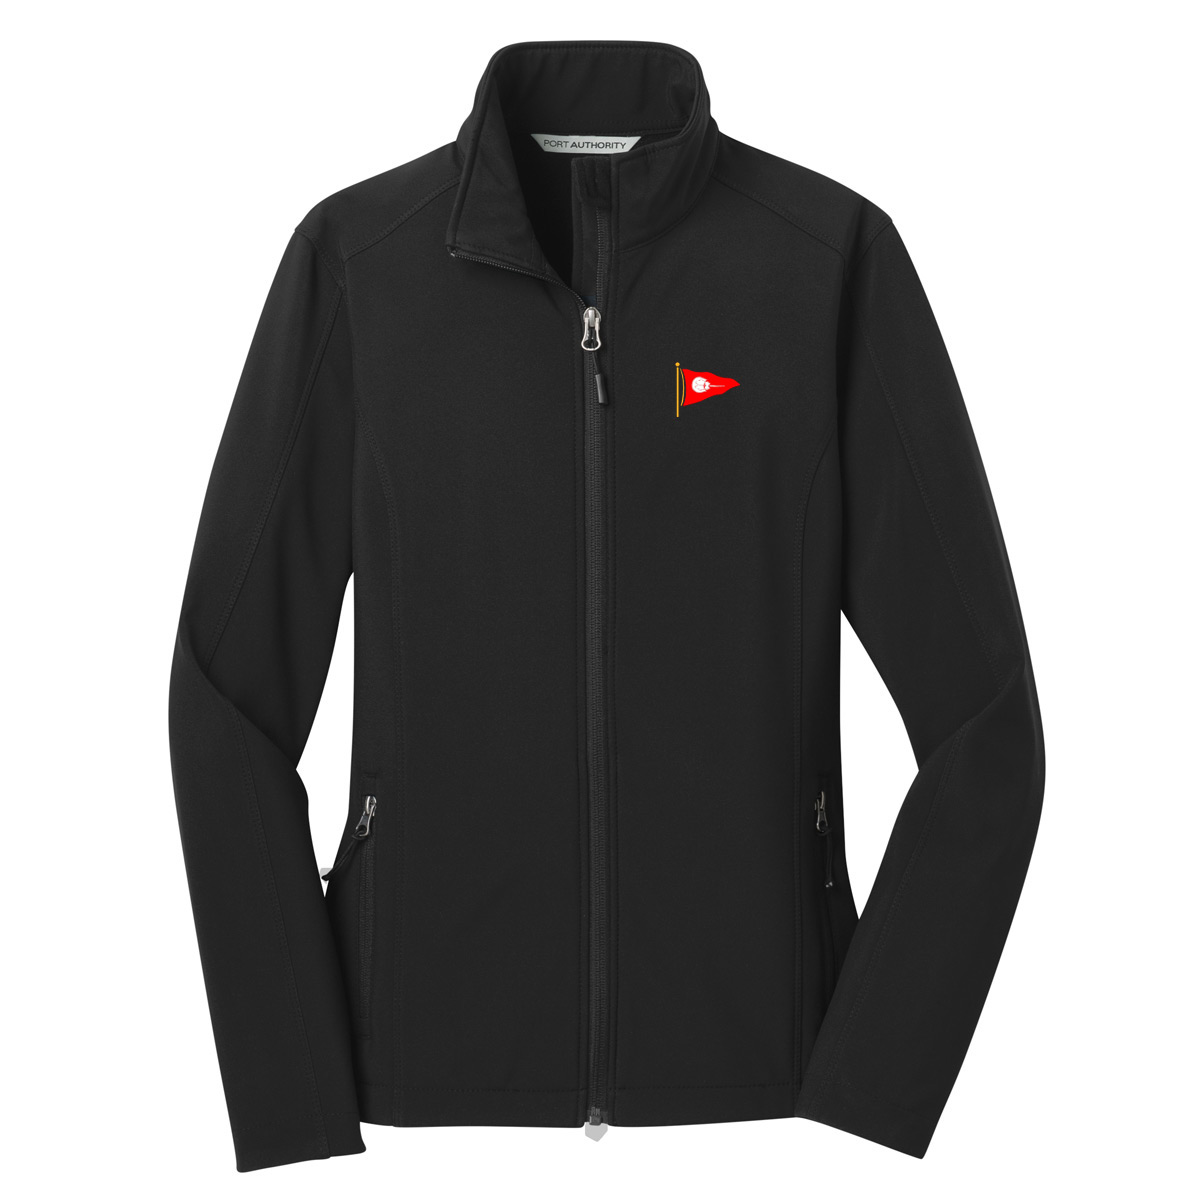 SHYC - WOMEN'S SOFTSHELL JACKET